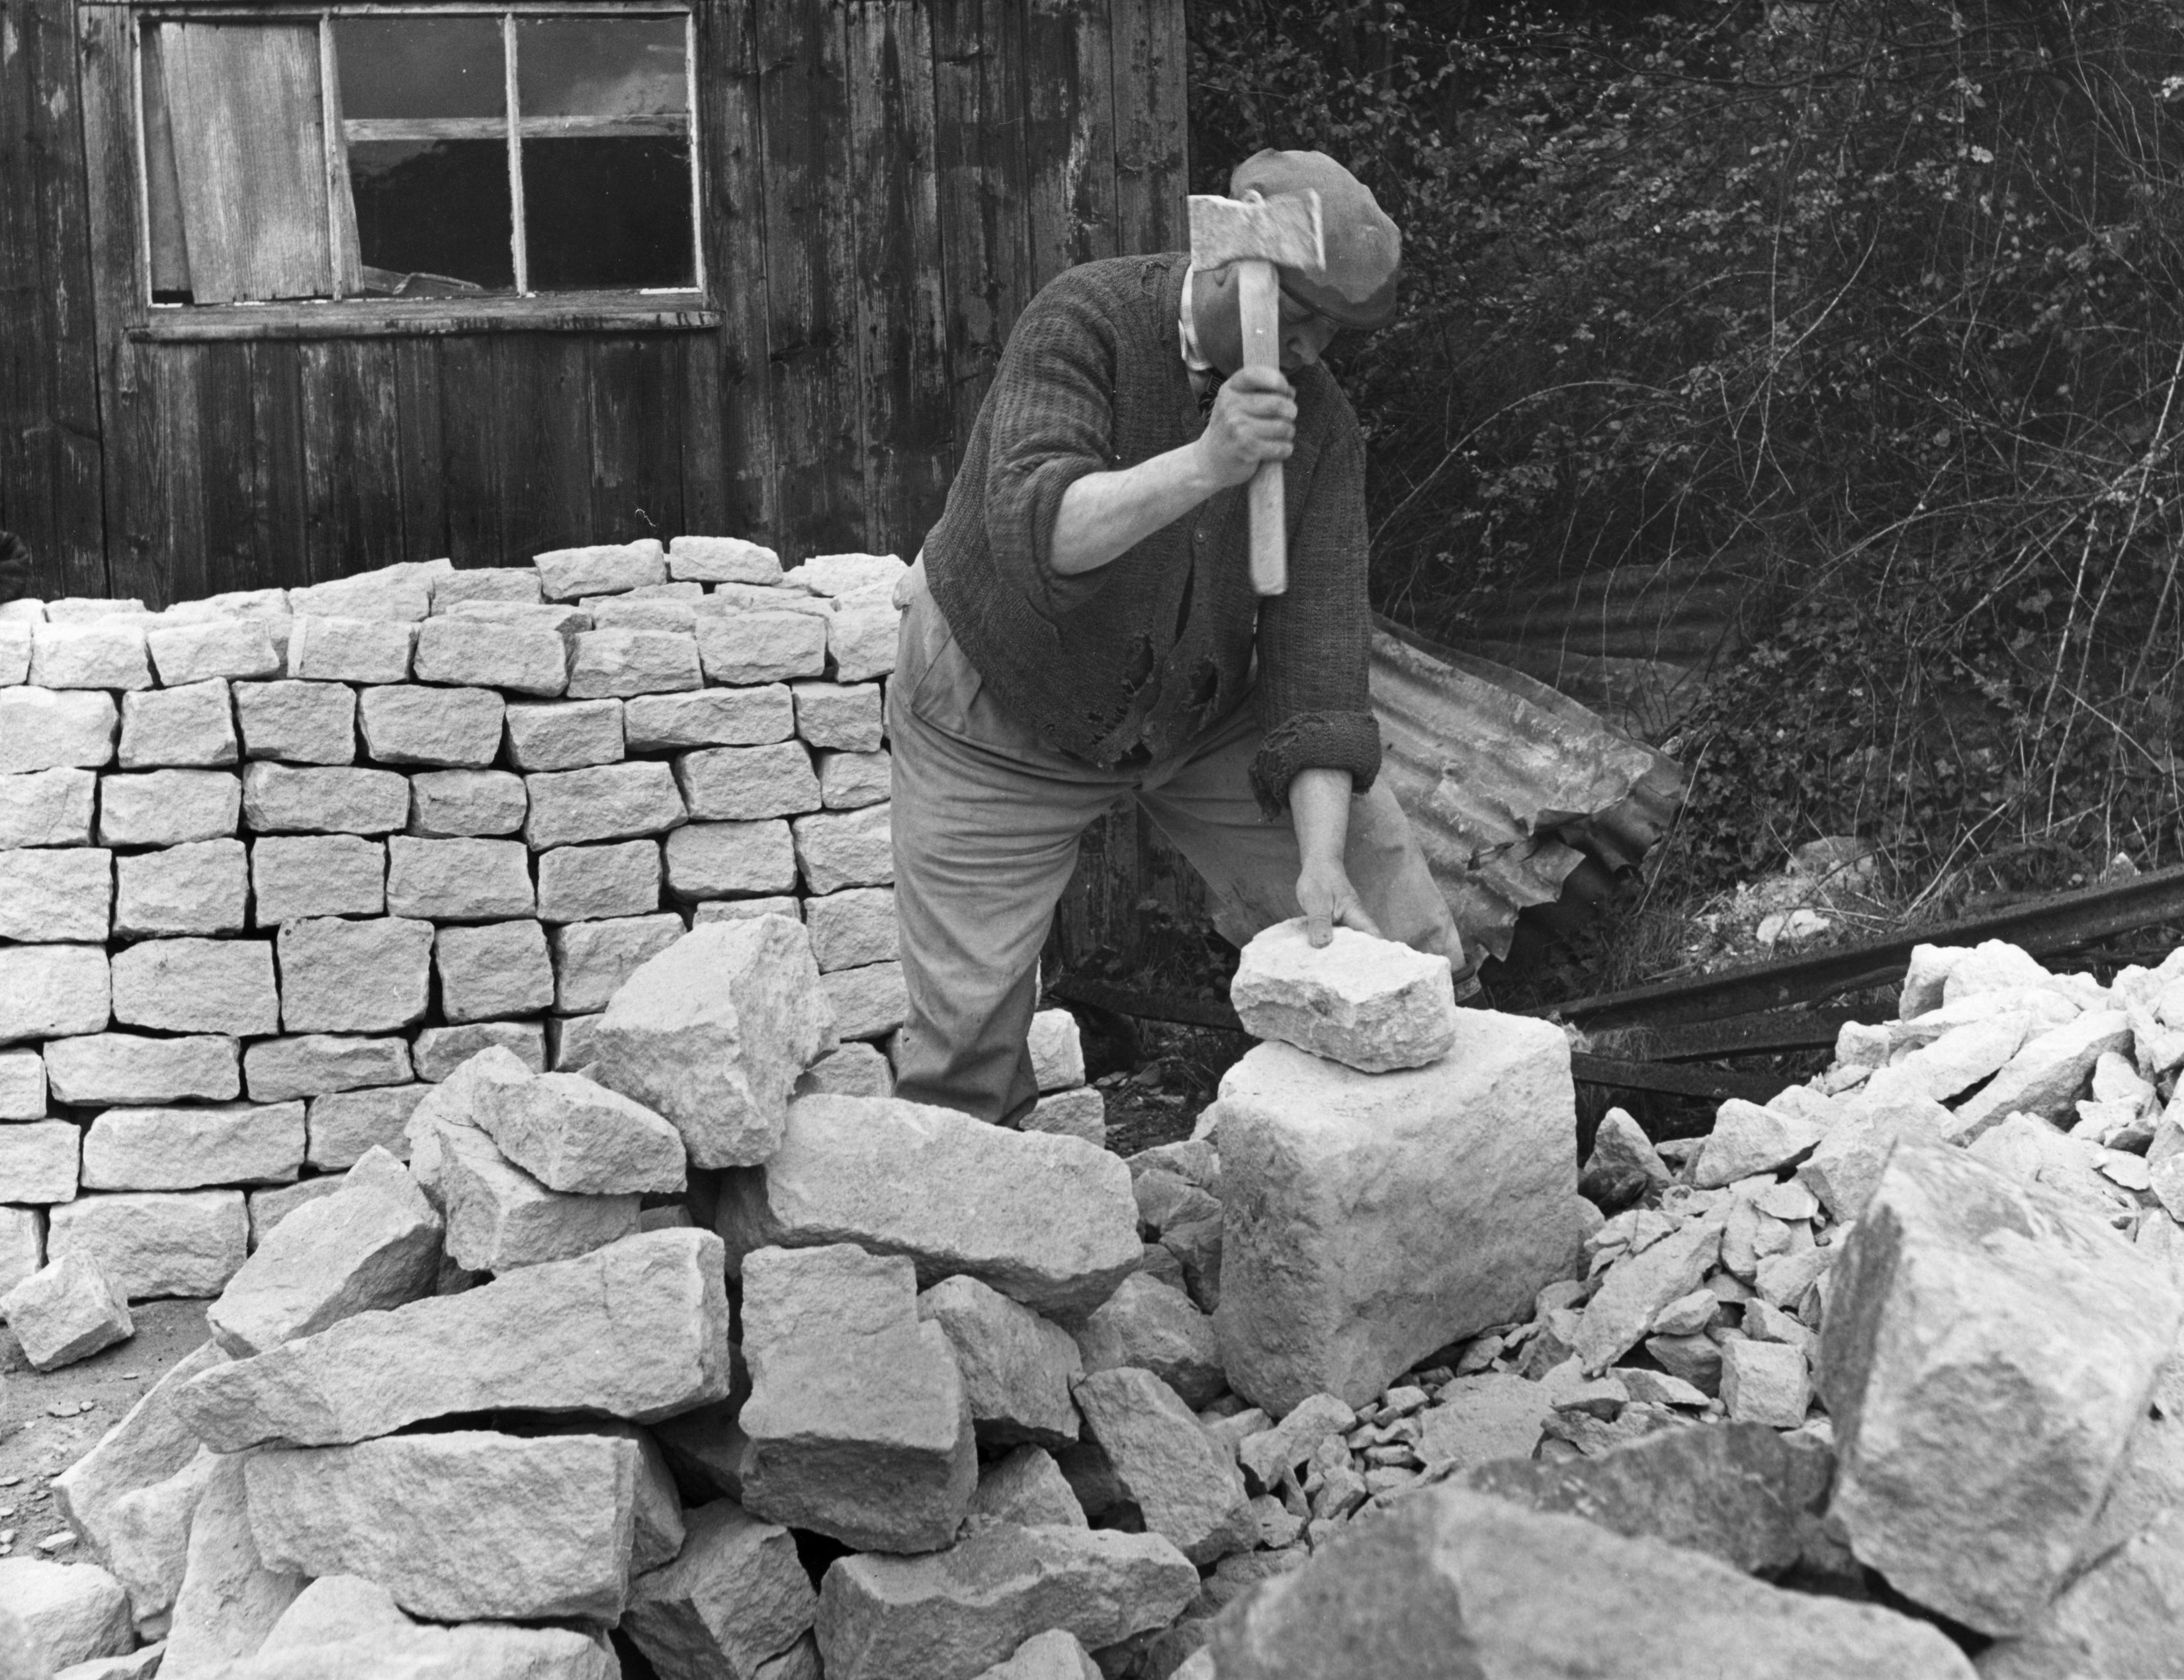 A mason shaping Cotswold stones